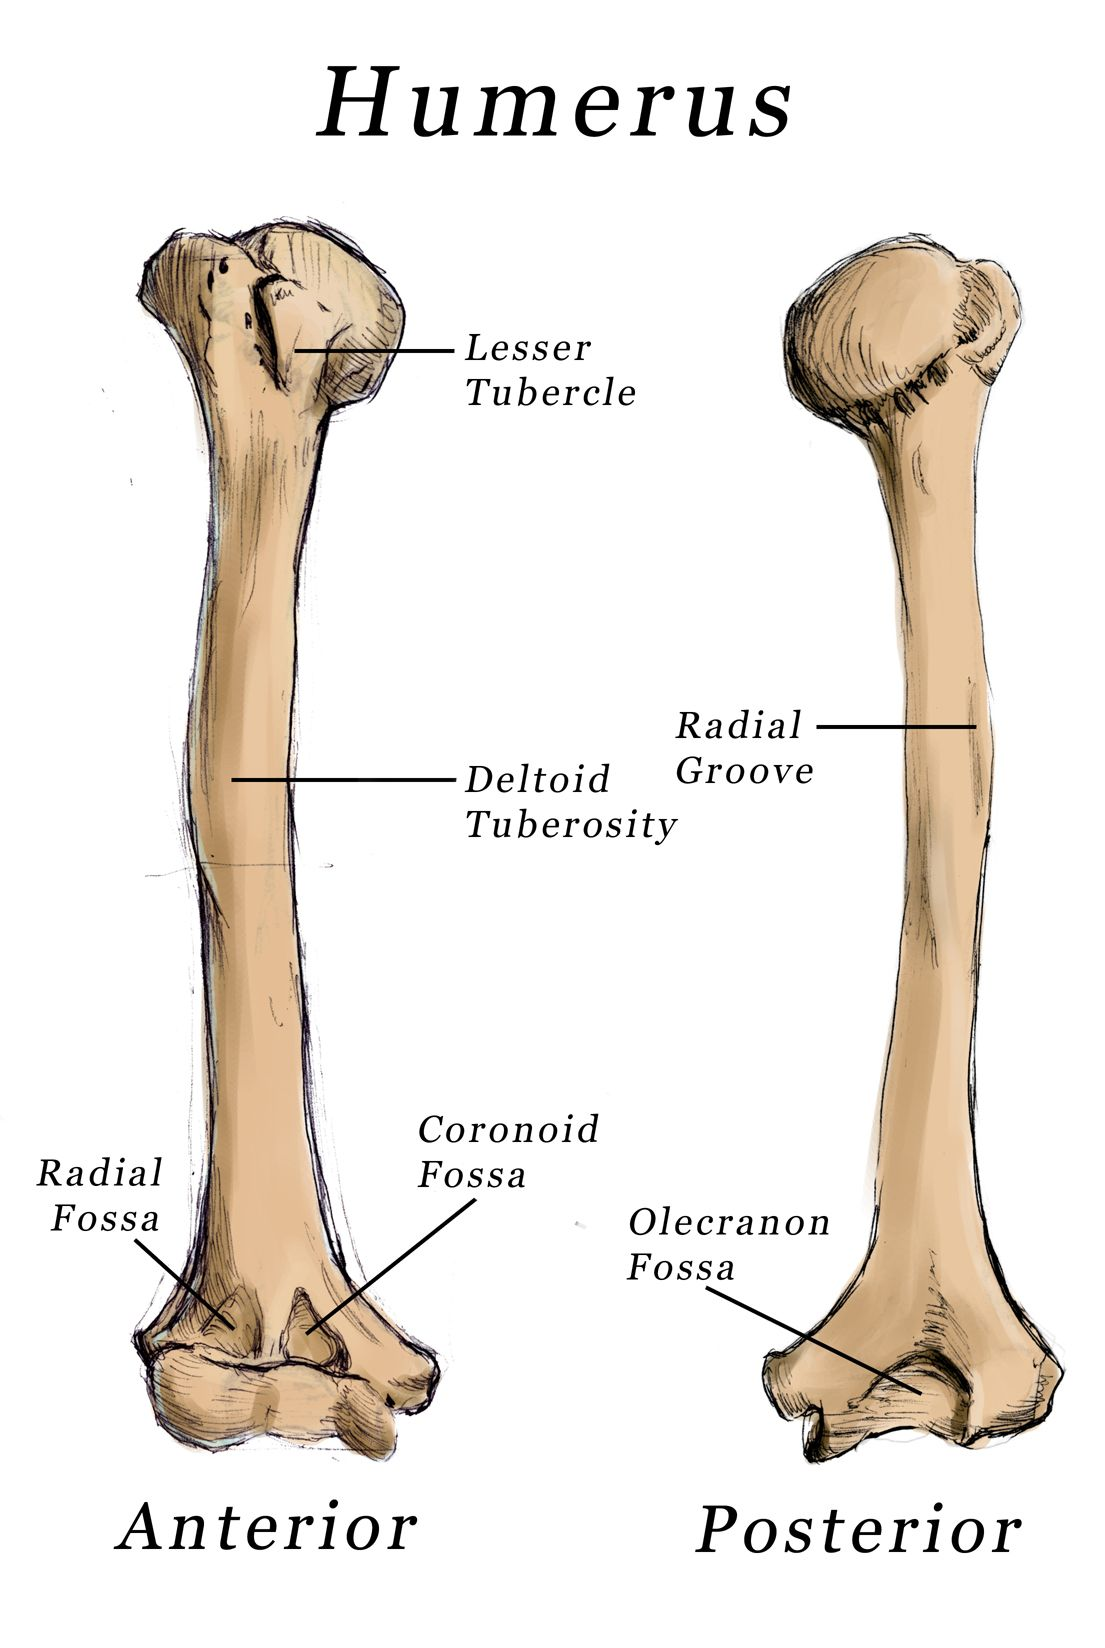 what is tuberosity in anatomy images - learn human anatomy image, Human Body